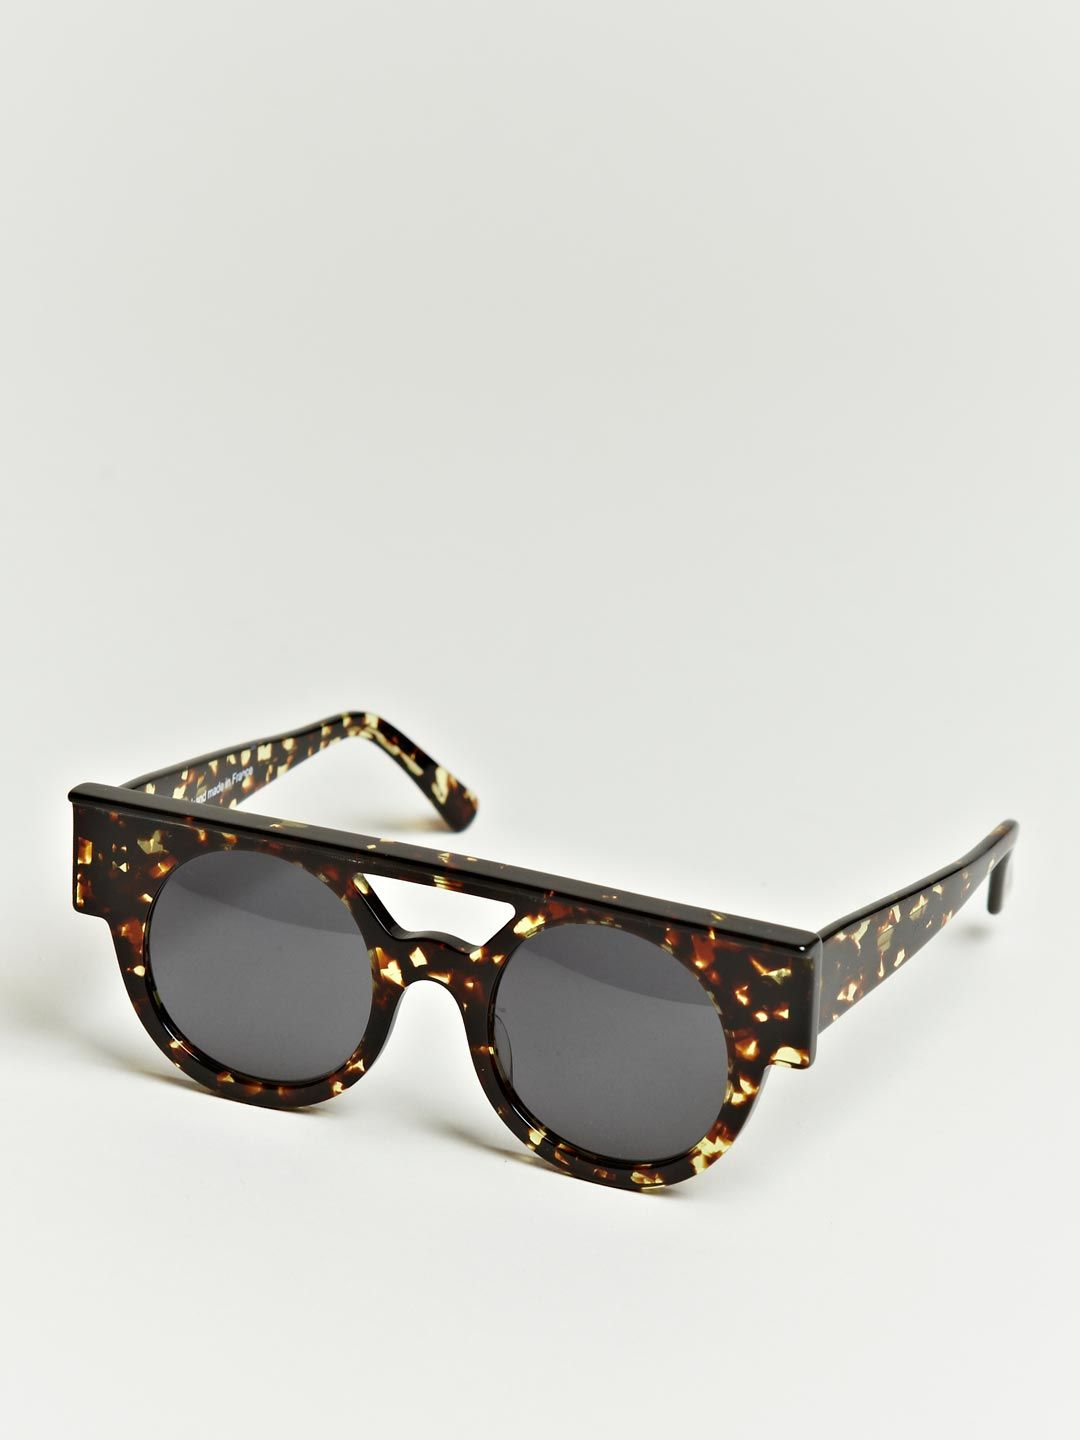 3601d26019e9f Illesteva Meyer Sunglasses. I have gone back to wearing glasses.These would  be a fab pair to own, eh